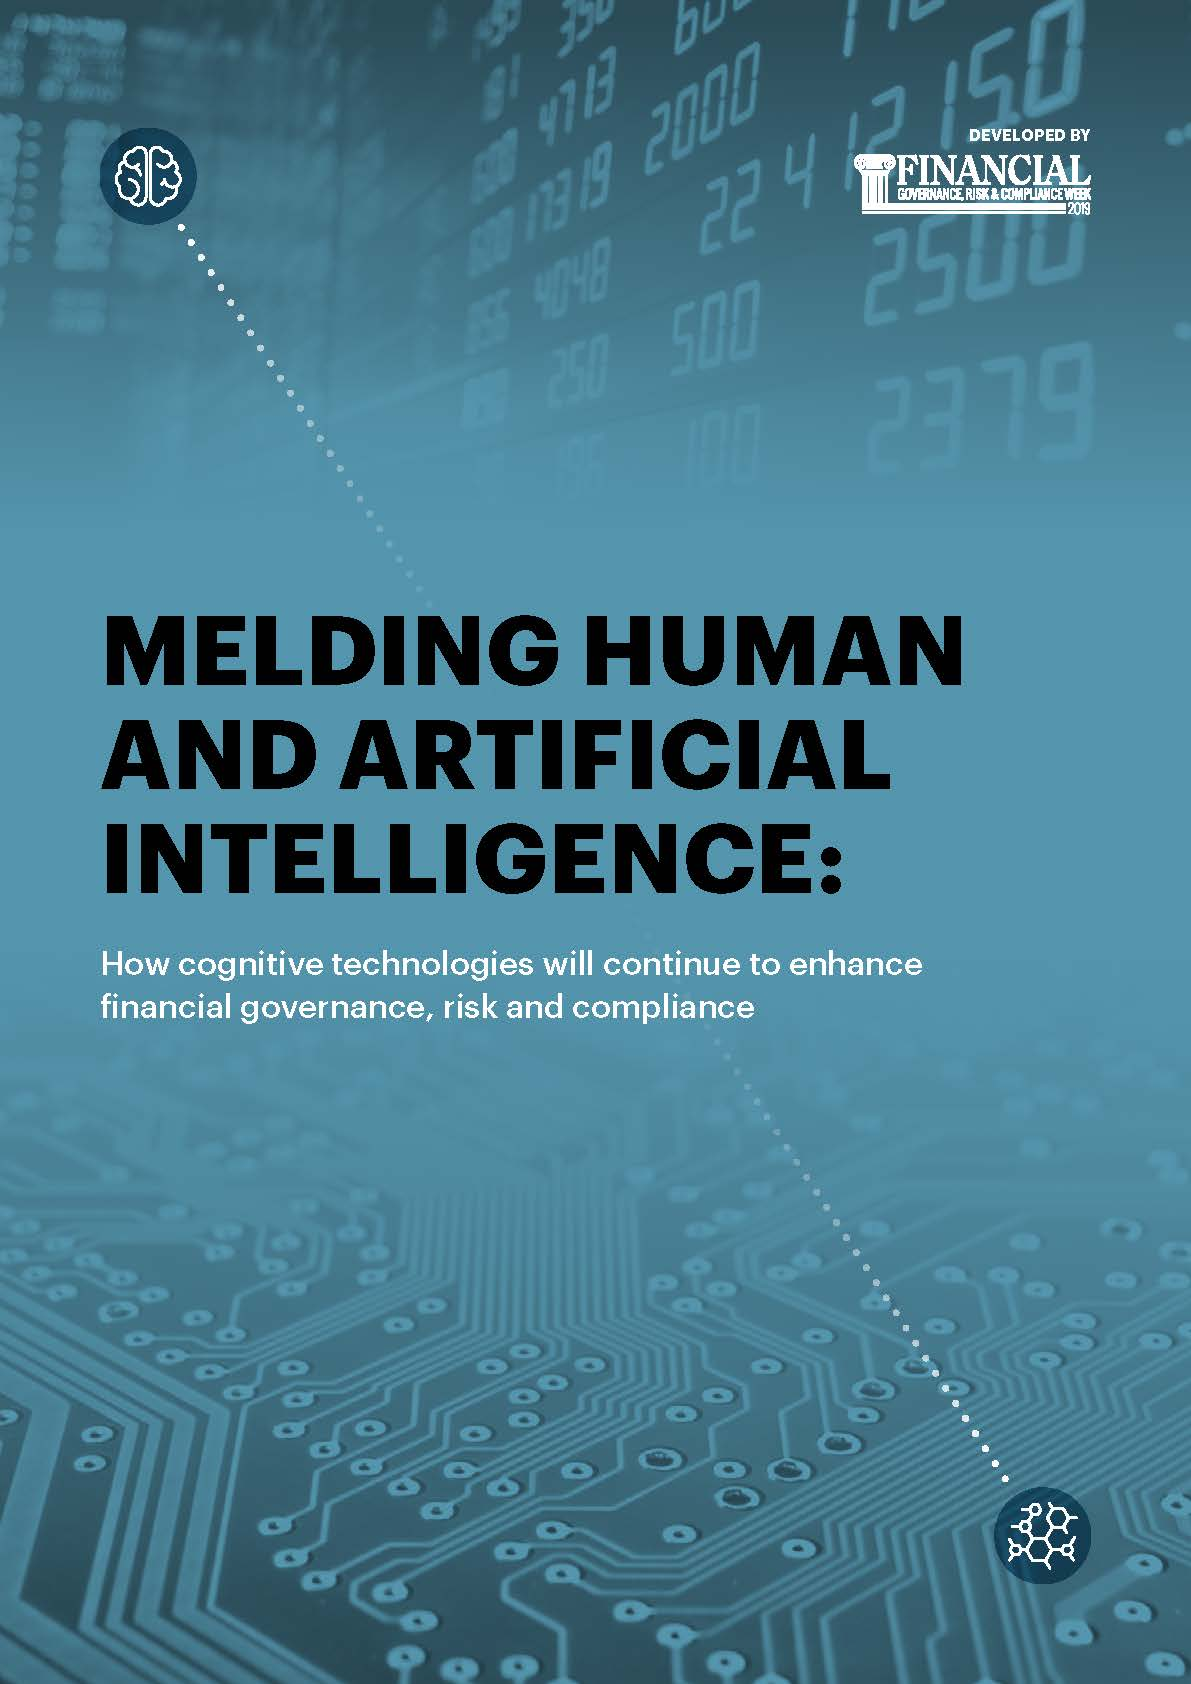 Download the Report - Melding Human and Artificial Intelligence: How Cognitive Technologies will Continue to Enhance Financial Governance, Risk and Compliance spex